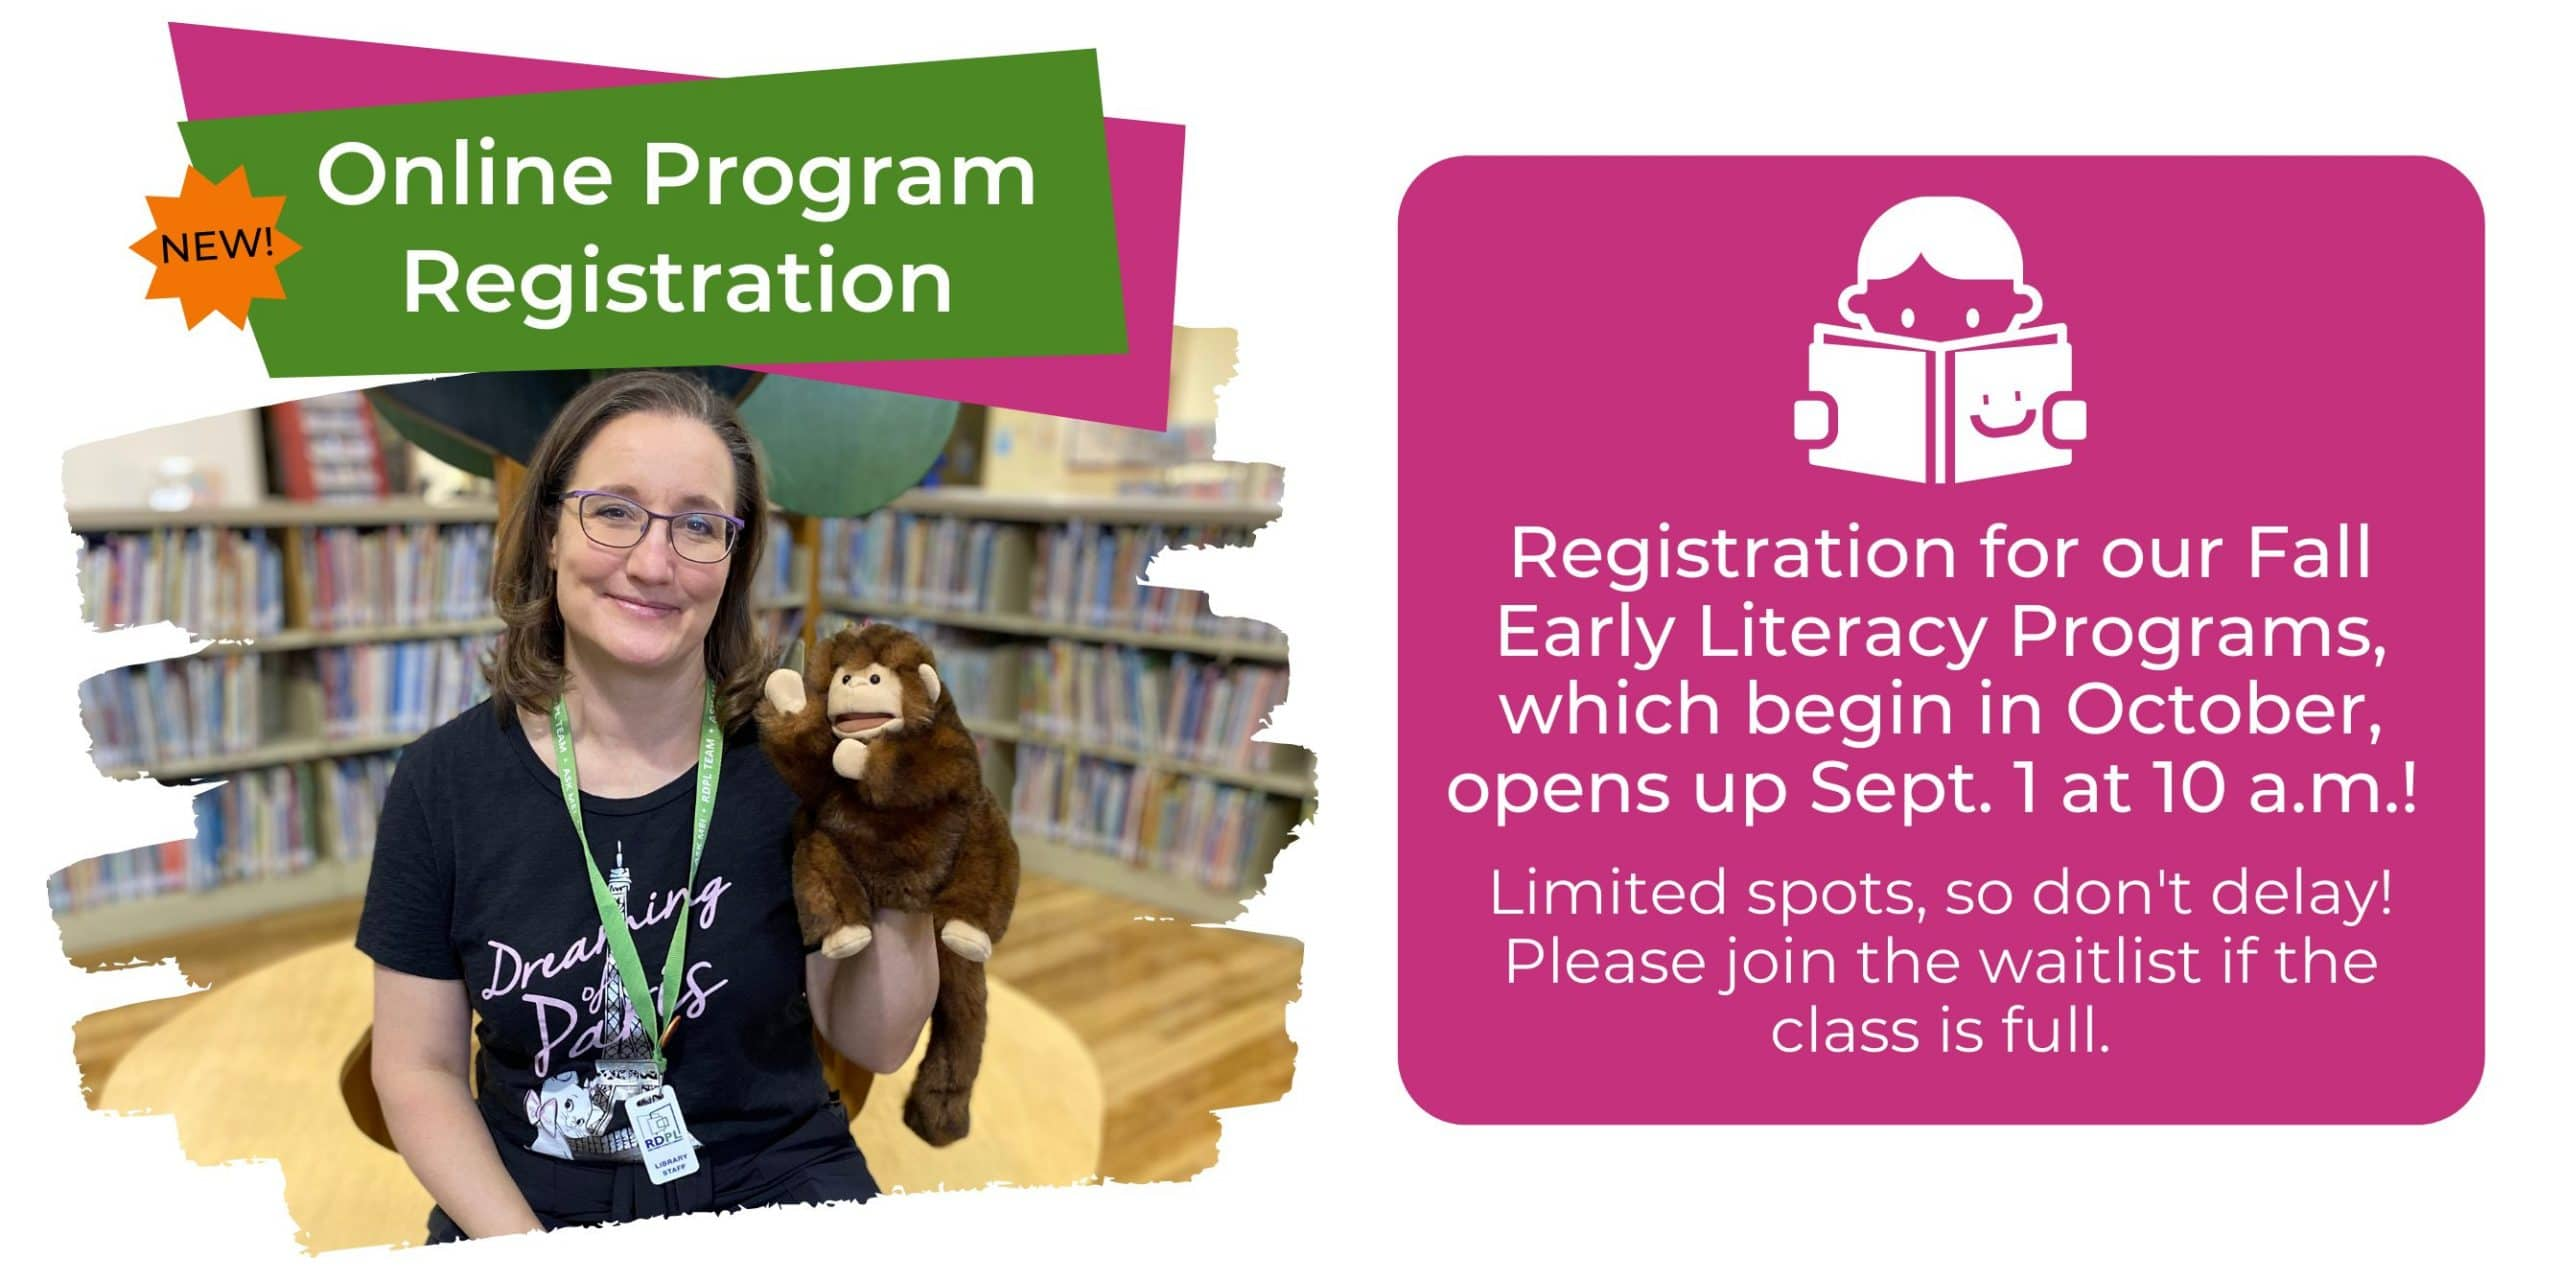 New! Online Program Registration. Registration for our Fall Early Literacy Programs, which begin in October, opens up Sept. 1 at 10 a.m.! Limited spots, so don't delay! Please join the waitlist if the class is full.